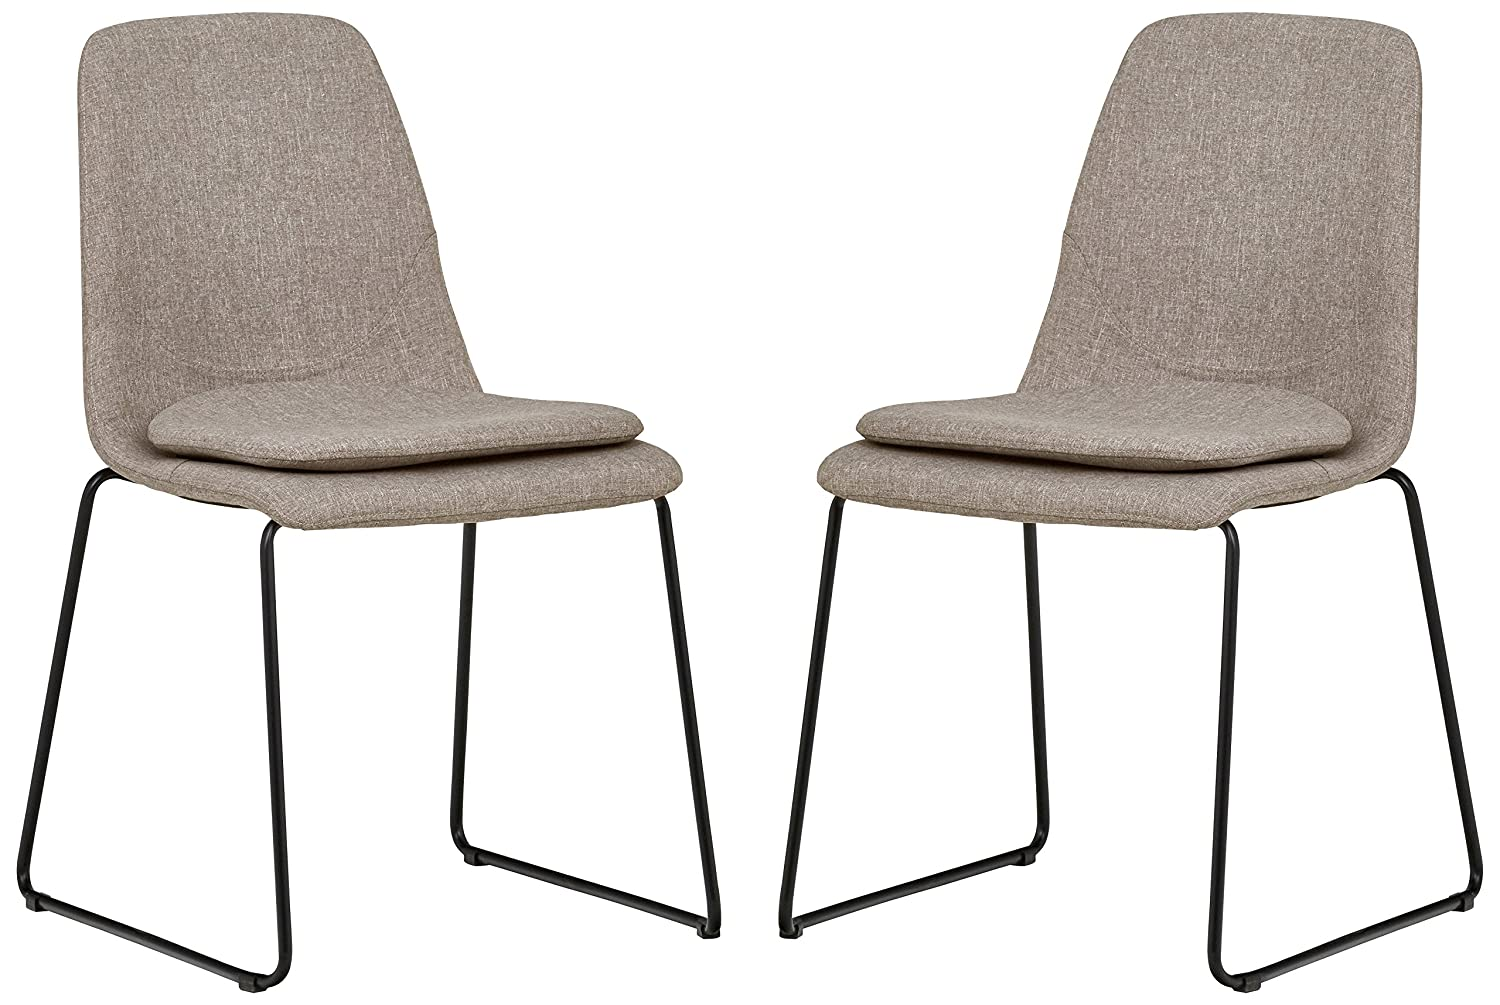 Rivet Brianna Mid-Century Modern Kitchen Dining Room Set of 2 Removable Cushion Chairs, 34.2 Inch Height, Grey